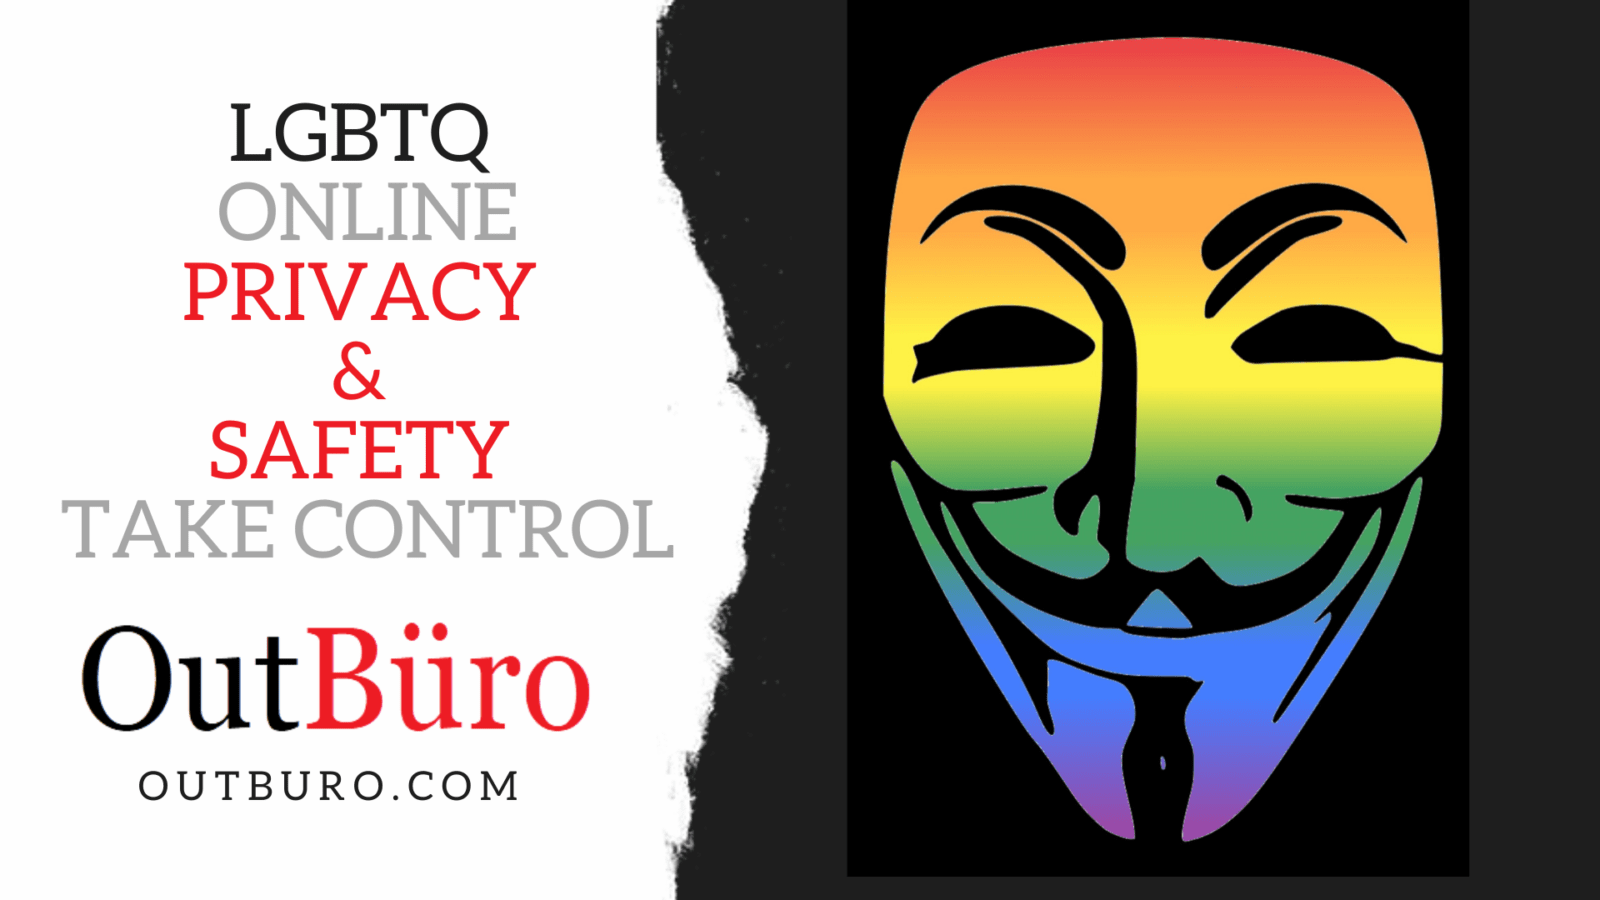 LGBTQ Online Privacy and Security - What You Need to Know and Do Take Action - OutBuro LGBT Entrepreneur Professional Community Gay Business Owner Lesbian Startup